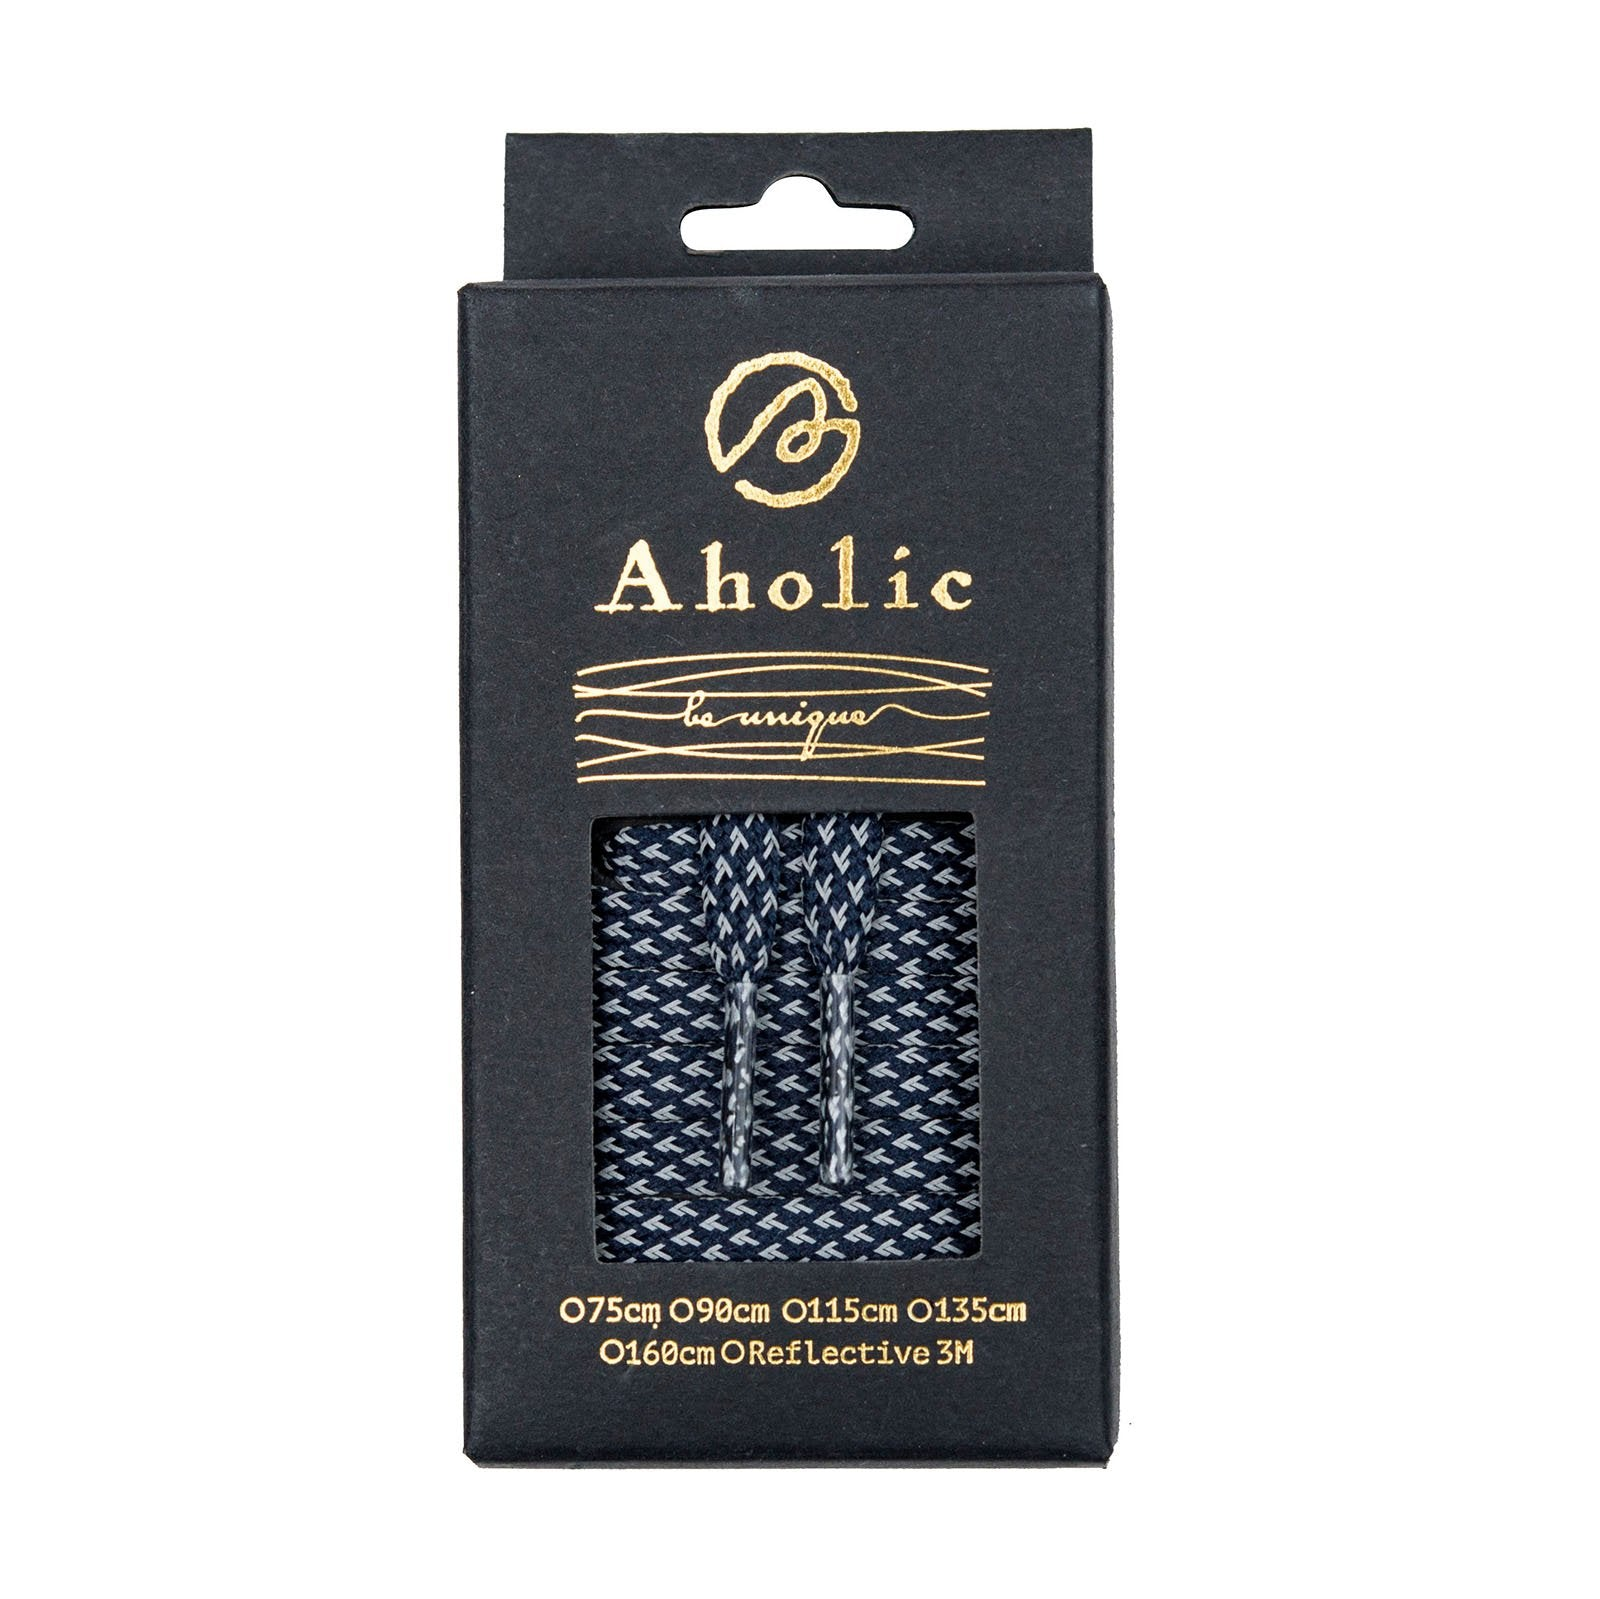 Aholic 3m Reflective Flat Shoelaces (3M反光扁鞋帶) - Navy Chidori (海軍藍千鳥)-Shoelaces-Navy Selected Shop